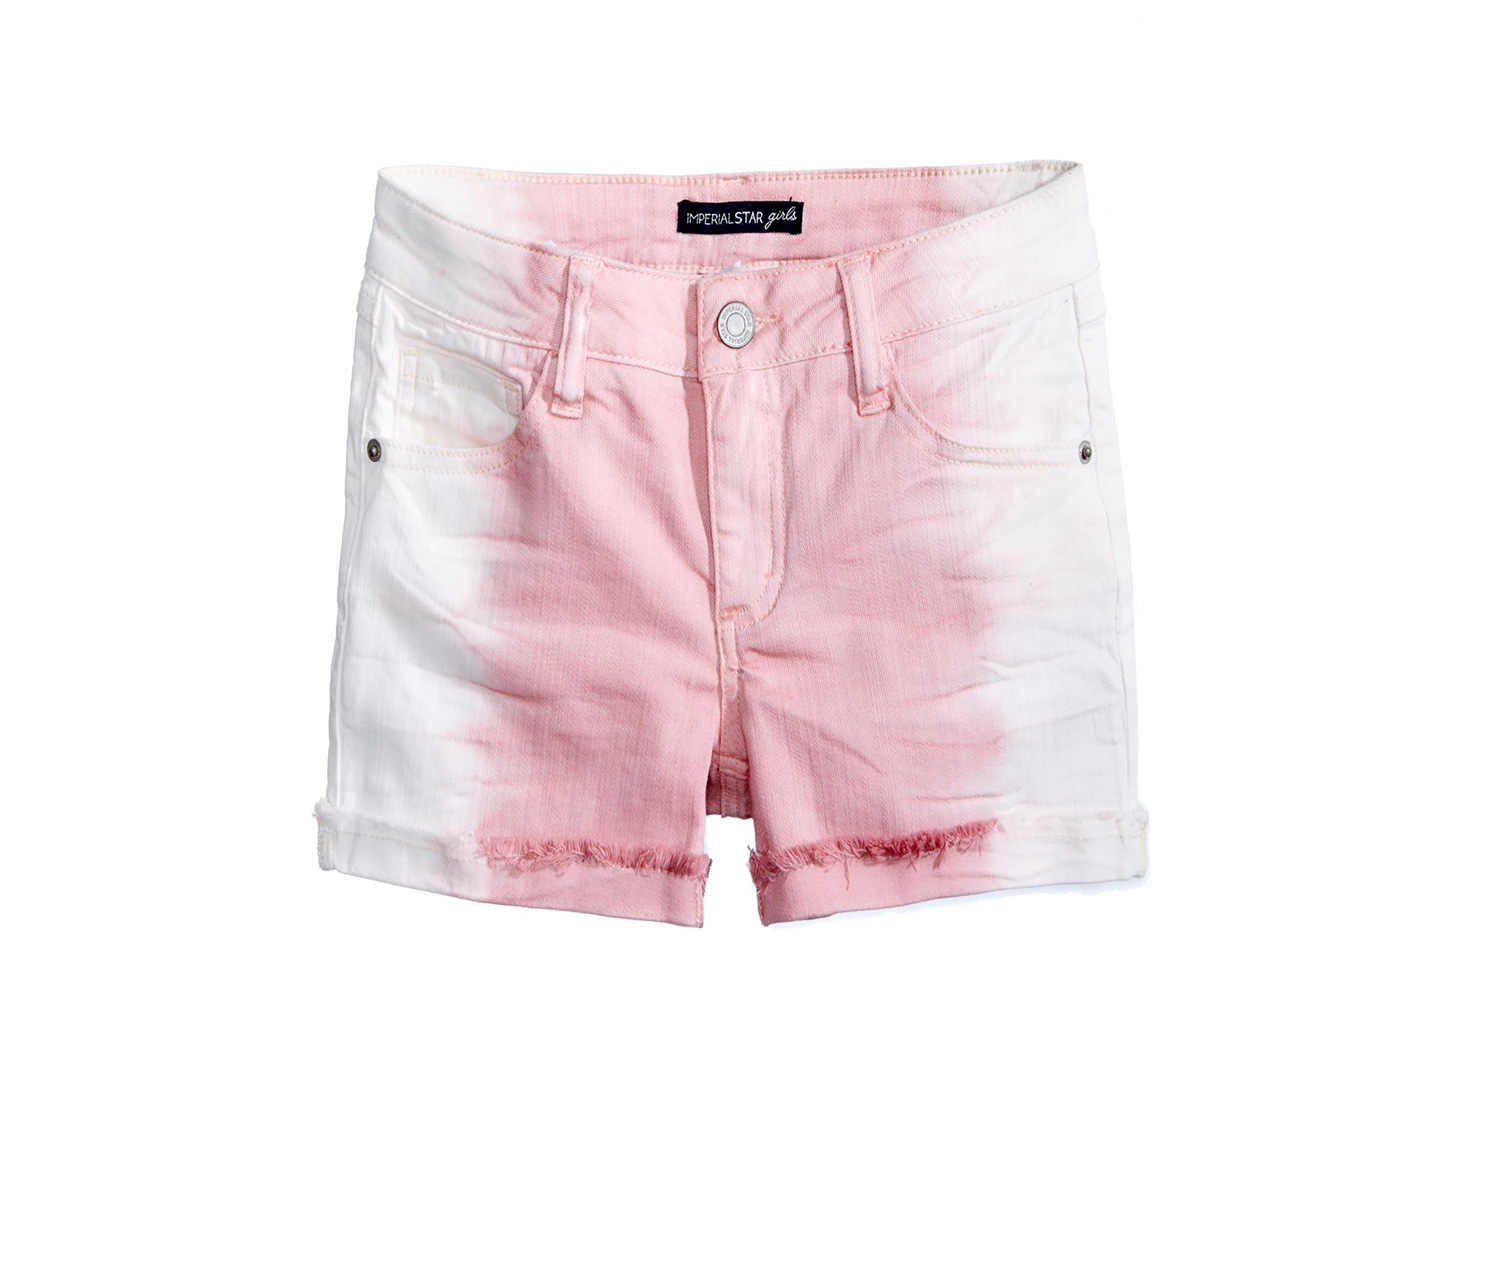 Imperial Star Ombre Adjustable Waistband Shorts, Frosted Rose